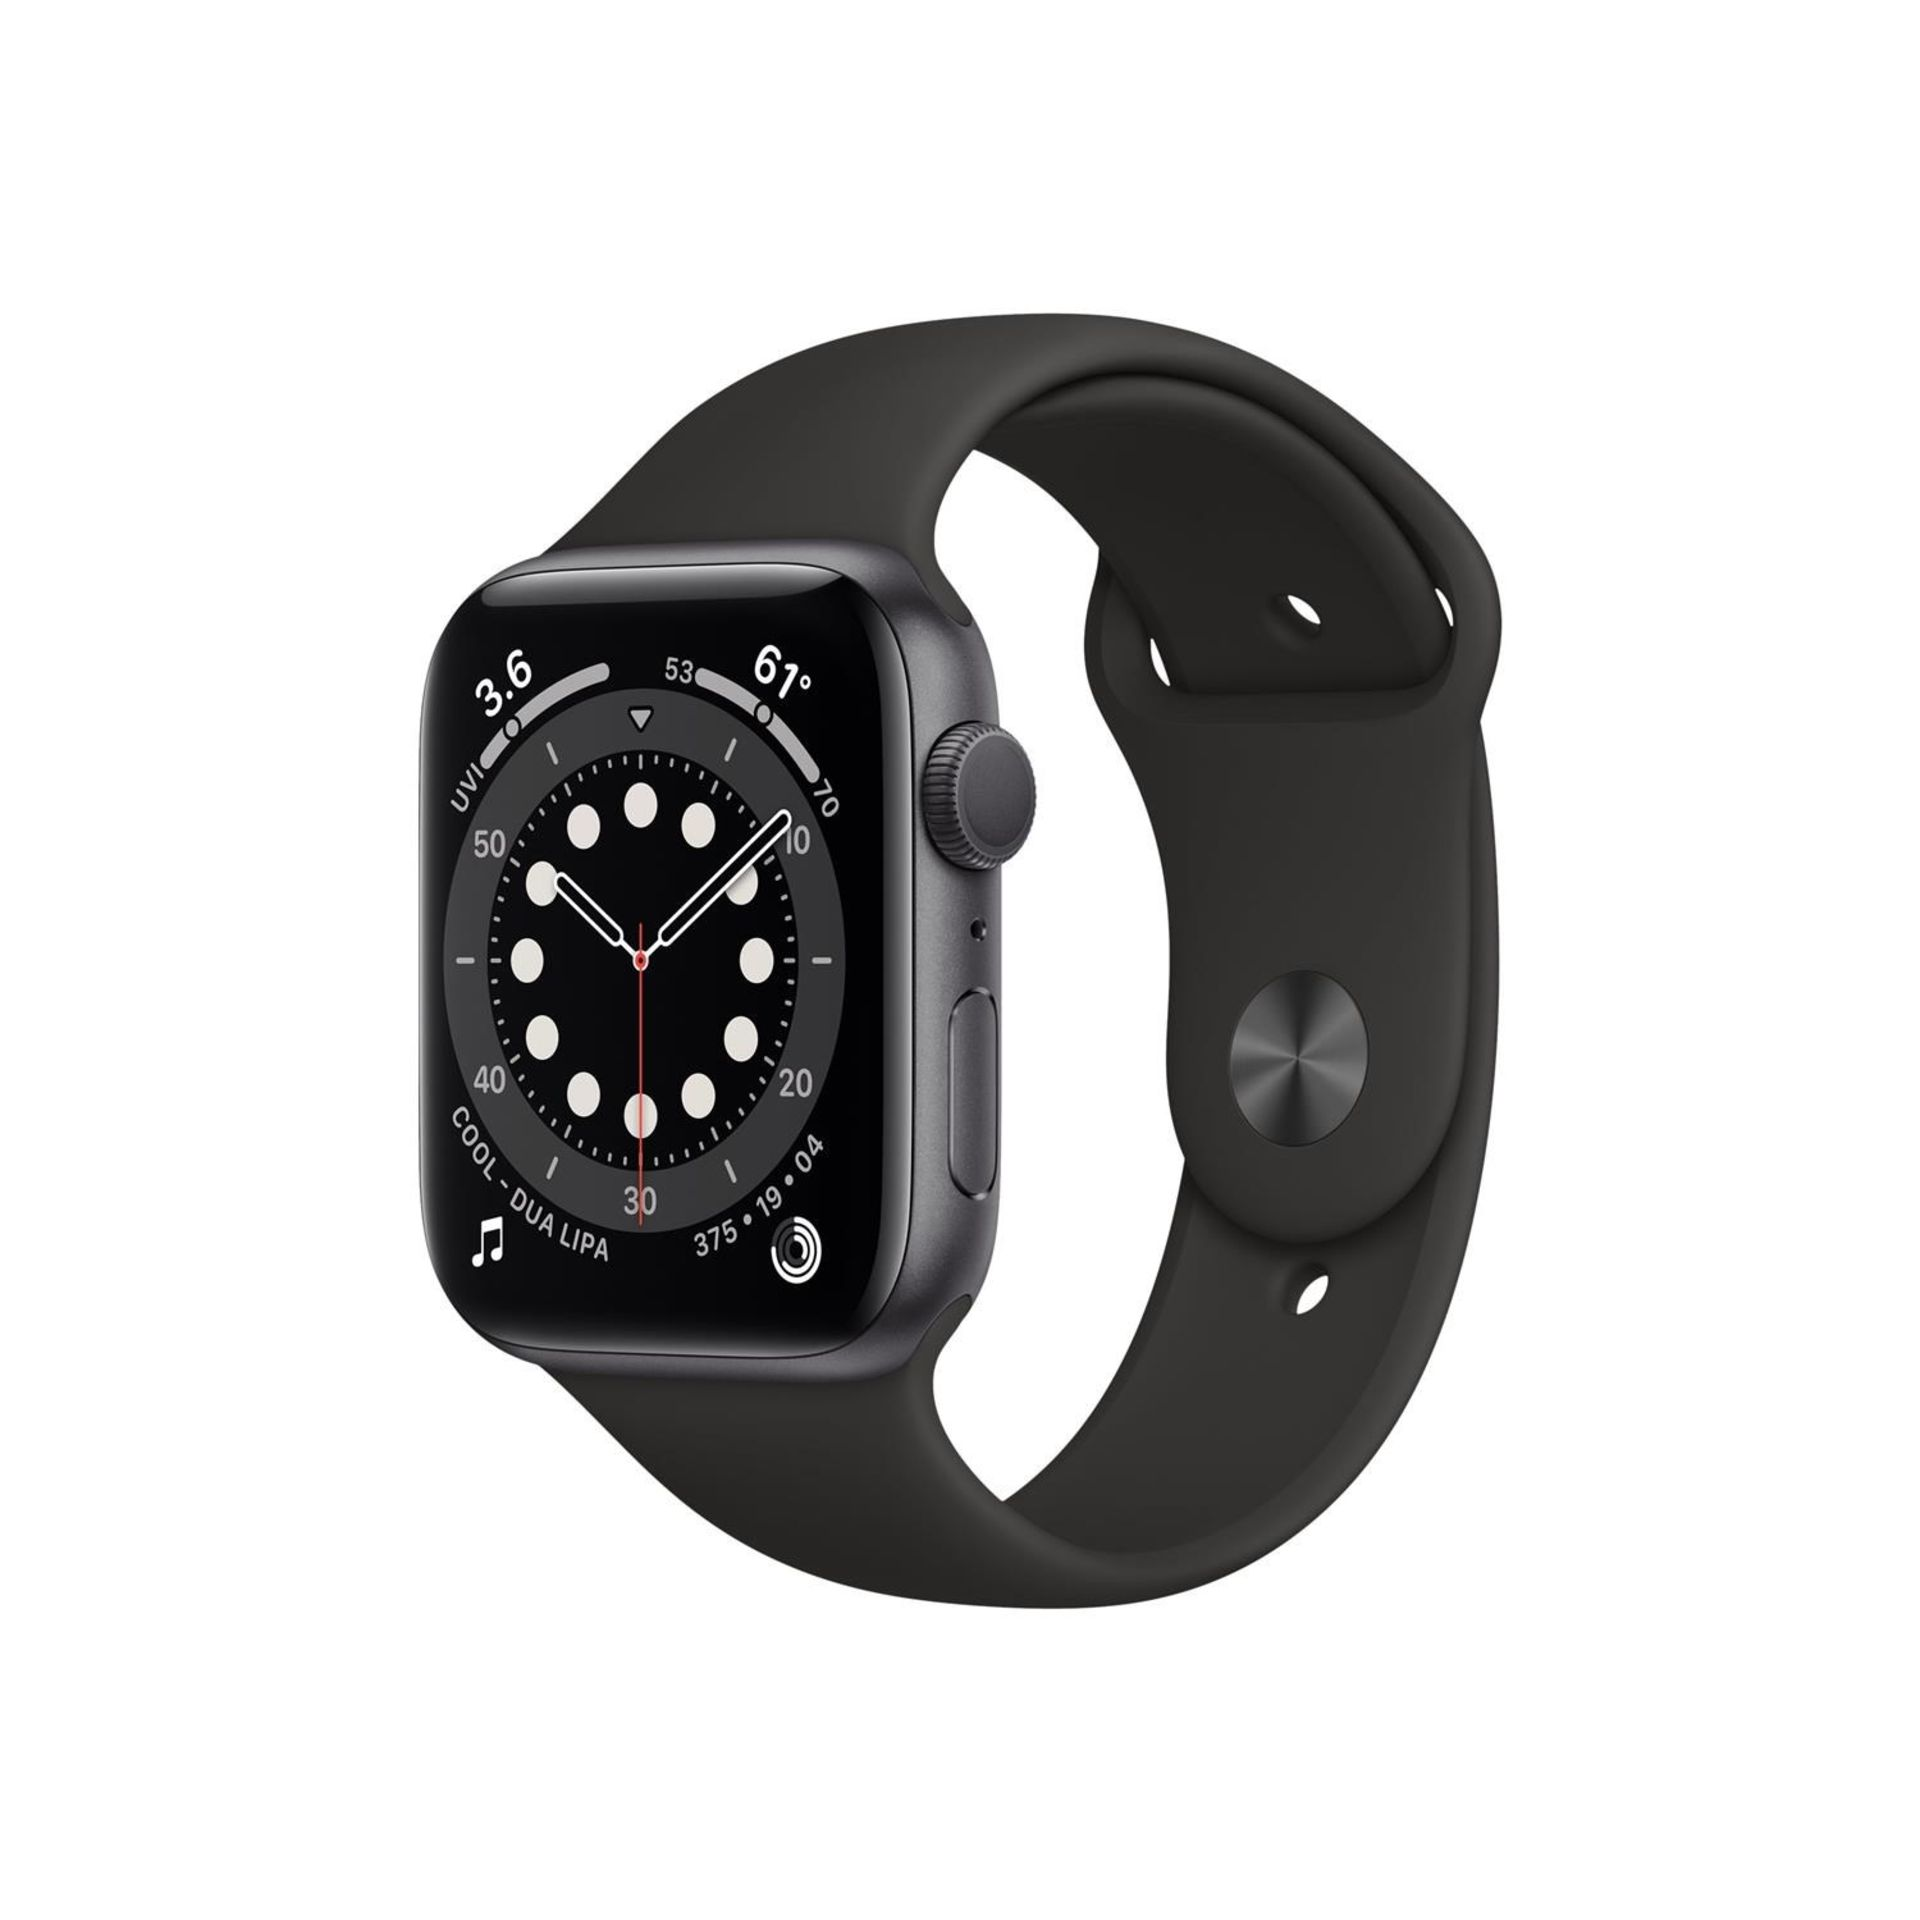 1 BOXED BRAND NEW APPLE WATCH M00H3B/A SERIES 6 44MM SPACE GRAY ALUMINIUM WITH BLACK SPORT BAND